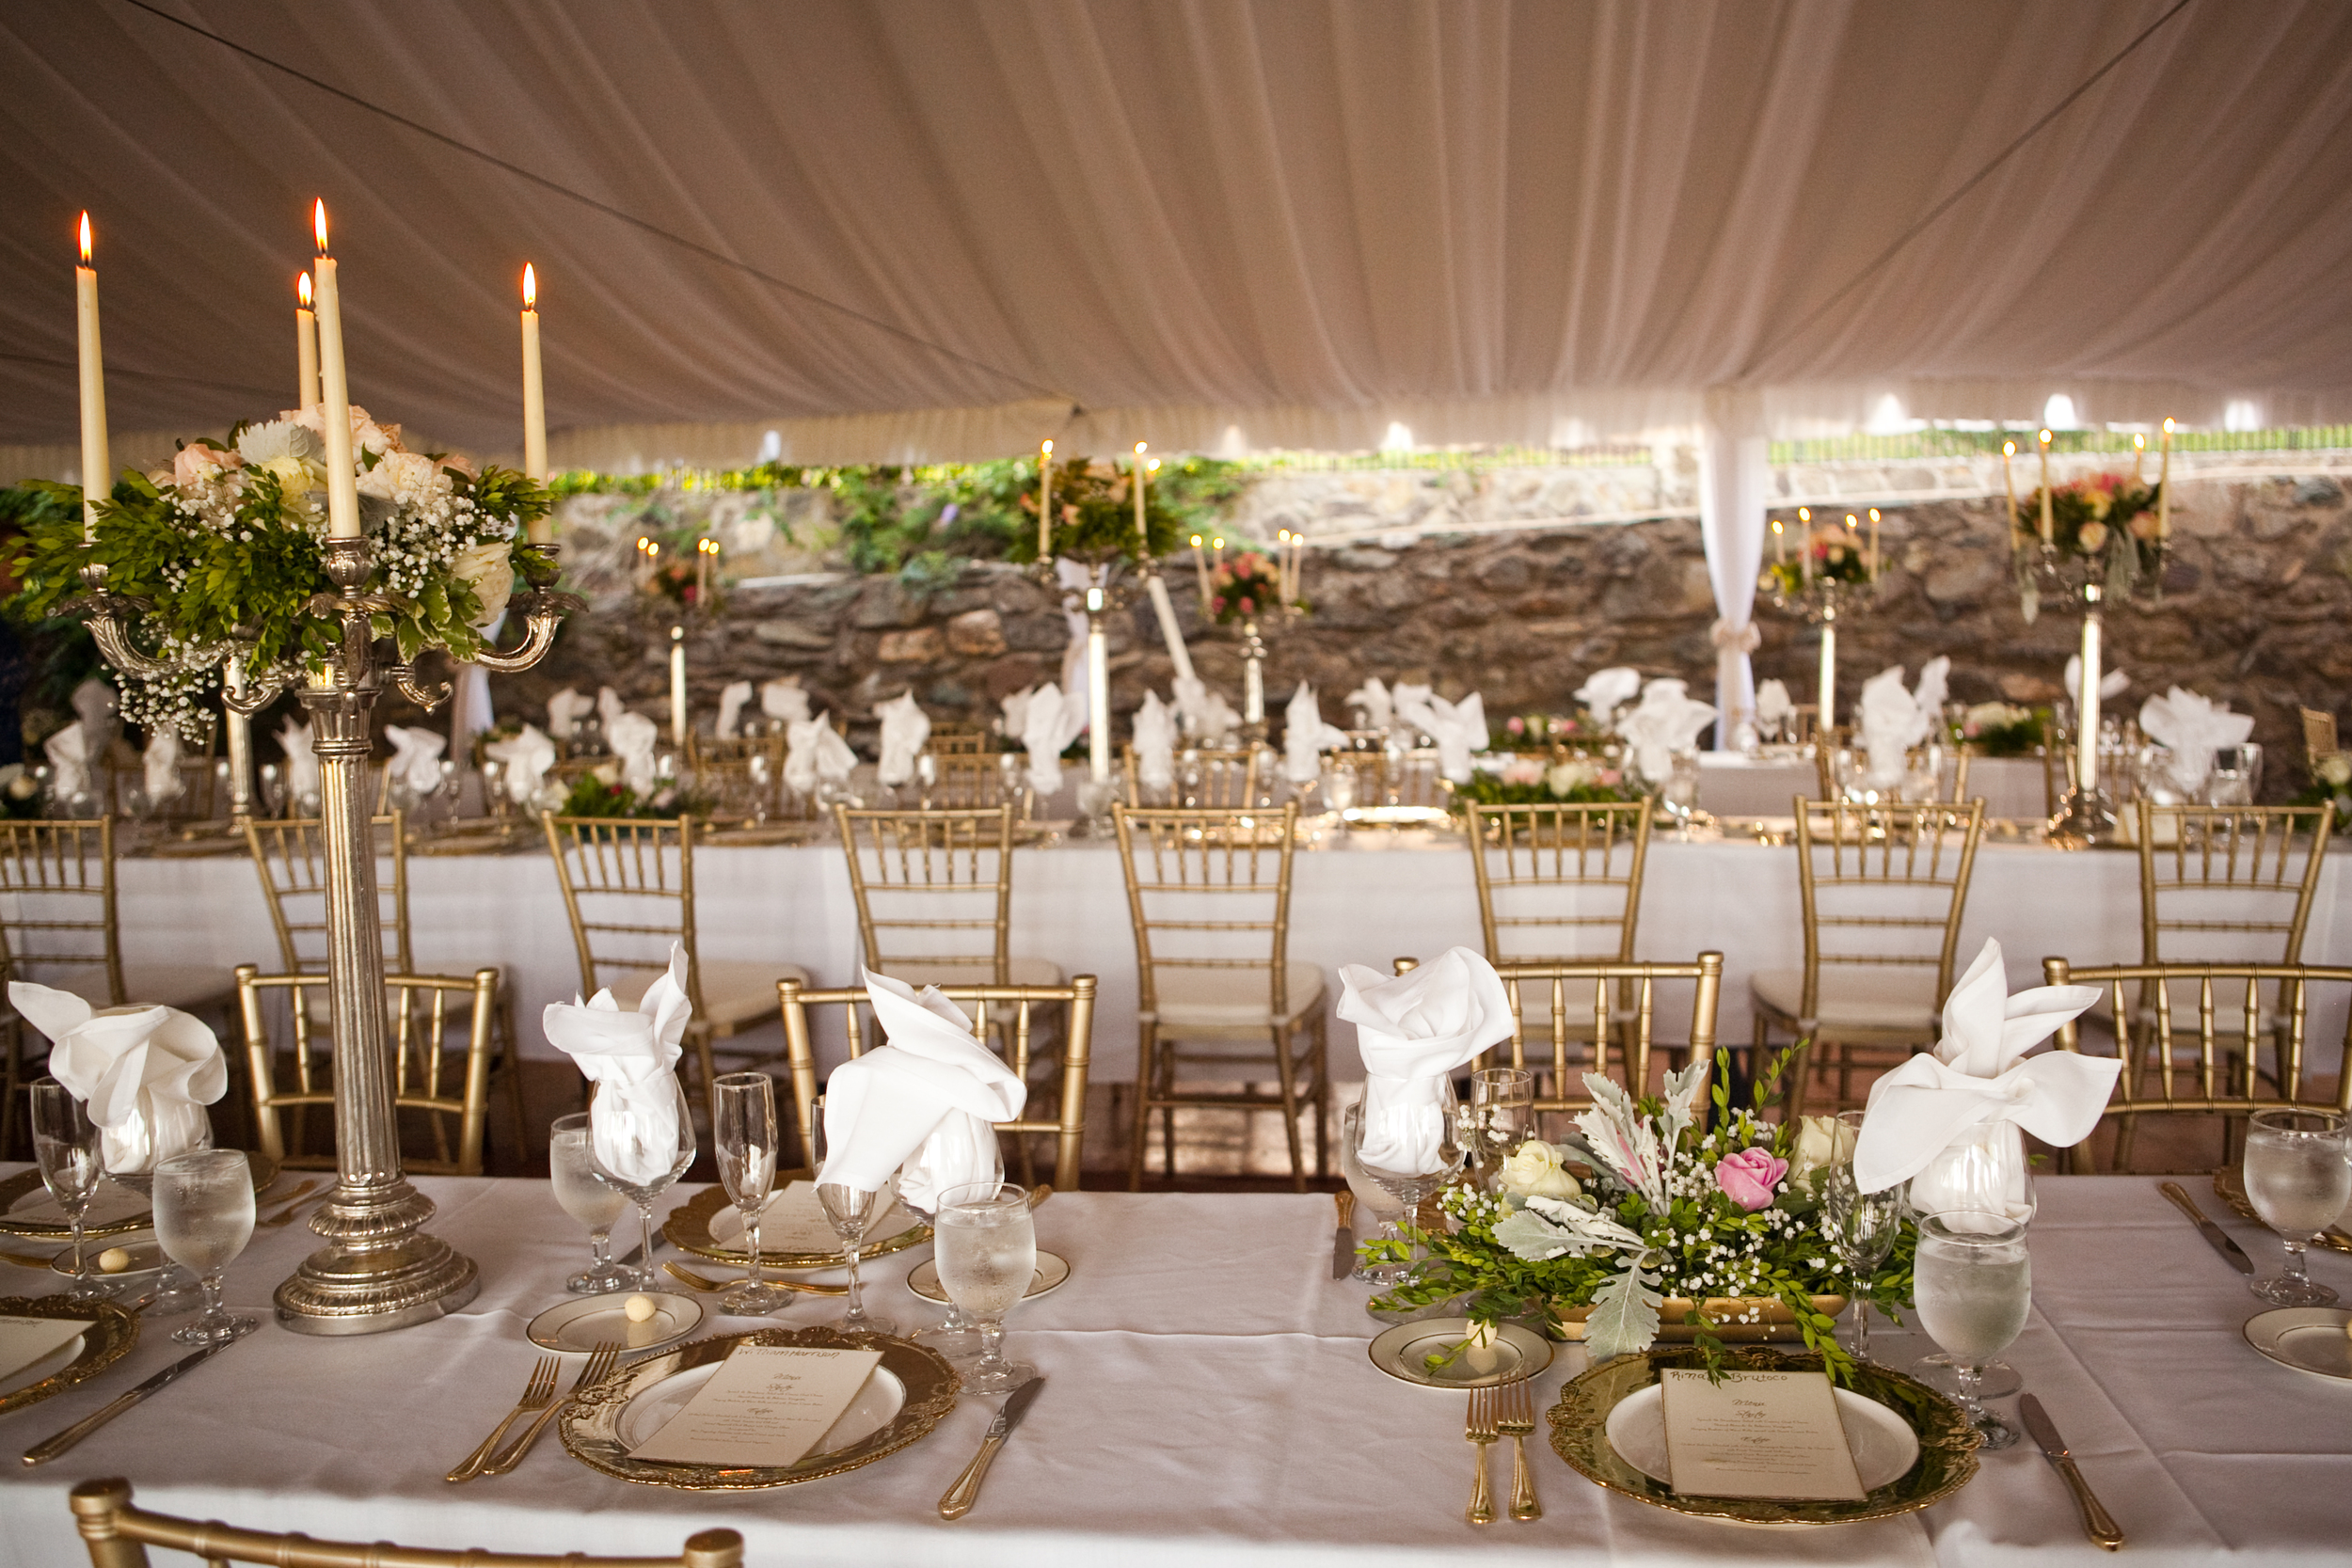 250+ Person Tent, with Wine Country view, attached to the Manor House as shown.